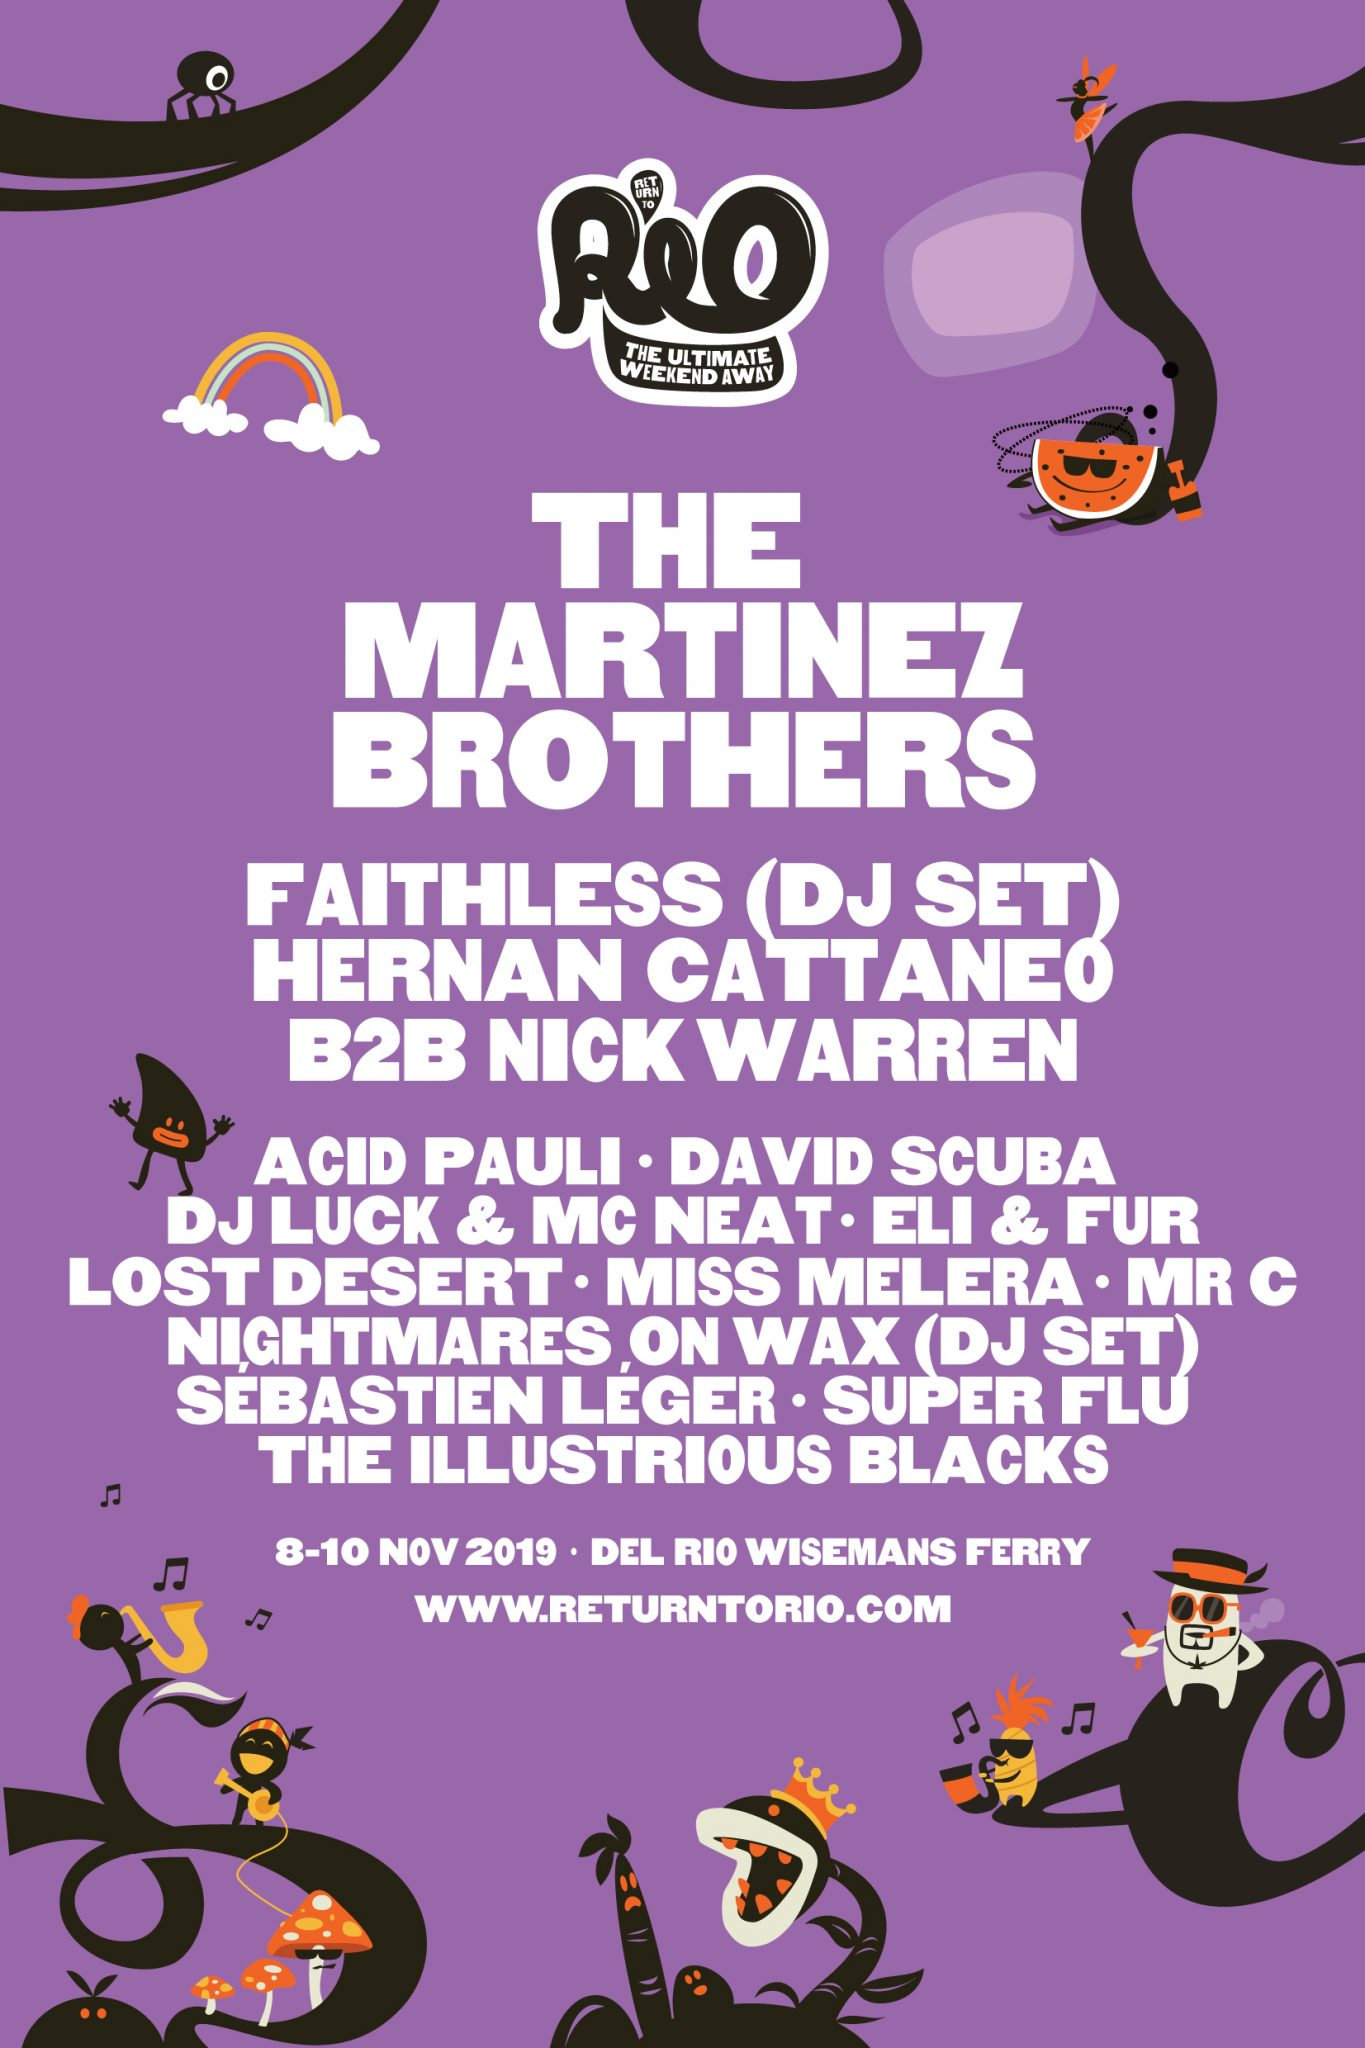 "RETURN TO RIO ANNOUNCES  THE MARTINEZ BROTHERS, FAITHLESS (DJ SET),  DJ LUCK & MC NEAT, ACID PAULI & MORE     HIDDEN DISCOS // SECRET LODGE SOIREES //  NEO-AFRO-FUTURISTIC-PSYCHEDELIC-SURREALISTIC-HIPPYS //  TROPICAL POOL PARTIES & RANDOM ACTS OF KINDNESS     MEDIA RELEASE: Sydney, 5 June 2019: Return to Rio has today announced the massive names joining the Riopian family for their annual gathering of magic, mischief and mayhem.      This November 8-10, the musical mecca will host the cream of the electronic crop as Faithless is set to join Puerto Rican house lords and DC10 favourites, The Martinez Brothers at the top of the bill. The DJ set from Faithless, will take guests on a euphoric journey celebrating the band's biggest hits from 20 years at the top. 'Insomnia', 'God is a DJ', and 'We Come One' are not only timeless classics, but song titles befitting the Return to Rio revelry at large.     The lovingly crafted line-up continues with Argentina's El Maestro, Hernán Cattáneo who will be reunited with dead-set legend Nick Warren for a very special performance. Widely touted as the hottest back-to-back duo on the planet right now, the pair will be making a triumphant return to Australia in honour of this year's event.     The sanctuary from sanity will also be soundtracked by Acid Pauli, the musical wizard who transverses the whimsical, fantastical and melodic tempos of house and techno.  Notorious for performances in magical places like Tulum's jungles and Black Rock City, Acid Pauli's well known on The Playa and his sets are a highlight of Burning Man.      Riopians making the pilgrimage, are in for 'A Little Bit of Luck', as DJ Luck & MC Neat take over the 'Masterblaster' for a house and garage re-wind like no other. Literally, 'There Ain't No Stopping Us.'     The infamous Rio pool party will be returning, but unlike ever before with prominent party-starter, Nightmares on Wax bringing his sun-drenched dubbed out soul DJ set to the banks of the Hawkesbury.     Following Lee Burridge's much-lauded closing performance of last year's event, fellow All Day I Dream alumni, Sebastien Leger and Lost Desert are stepping up to the plate to cast a dreamy spell over the main stage, with their laidback house and eclectic grooves.     Dancefloor detonators, Eli & Fur have been snared too. These in-demand DJ divas, who are firm favourites of the Anjunadeep fold, write and play their own tracks, mixing house and dance beats.     Long-standing Rio resident, the legendary Mr C AKA the Shamen behind 'Ebeneezer Good' is back for another edition, bringing 'Superfreq' right-hand man, David Scuba along for his first rodeo.      Next up is the NeoAfroFuturisticPsychedelicSurrealisticHippys, The Illustrious Blacks.  Monstah Black and Manchild Black are a ridiculously fun married combo, inspired by Prince, Grace Jones and Boy George, on a mission to fuse futuristic funk, hypnotic house and cosmic pop into pulsating positivity for the planet.     Finally, as part of his quest to champion the best beatmakers in the business, Master of Mischief, Ricky Cooper has also cherry-picked a couple of his favourite producers making massive waves in the underground, German duo Super Flu and vibe vixen Miss Melera.     More than just music, Return to Rio is The Ultimate Weekend Away, a refuge from the real life and a shindig quite unlike any other.     Return to Rio Attractions  ●      Random acts of kindness - where kindness is currency  ●      Hidden discos - seek and you shall find  ●      Australia's most vibrant fancy dress party - all-three-days, no holds barred  ●      Waterpark - refreshingly fun  ●      Pool - channeling Club Tropicana  ●      Campground kangaroos - 'straya  ●      Secret lodge soirees - where it pays to say hello to the neighbours  ●      Crazy golf - so cray cray     Sydney's finest mixologists will take care of the cocktails and a selection of fantastic food trucks will make this a gourmet getaway to remember. Just 90 minutes from Sydney, Del Rio Riverside resort boasts riverside air-conditioned cabins and a hot tub or two will be adding a touch of glamour to the serene campgrounds. Houseboat accommodation options are also on offer. Cruise the Hawkesbury at your leisure and then moor up at the port of Rio for an unforgettable adventure.     Ricky Cooper, Chief Mischief Maker, Return to Rio comments, ""As always we work incredibly hard behind the scenes to bring a selection of DJ heroes, past, present and future to Return to Rio. The vibes from our tribe are unparalleled and we can't wait to be reunited this November.""     Remaining golden tickets available on the melodic grapevine ($280) and online ($300) from July 1st. To register visit here.     VIDEO HERE     Facebook – Return to Rio  Instagram - @ReturntoRio  returntorio.com"